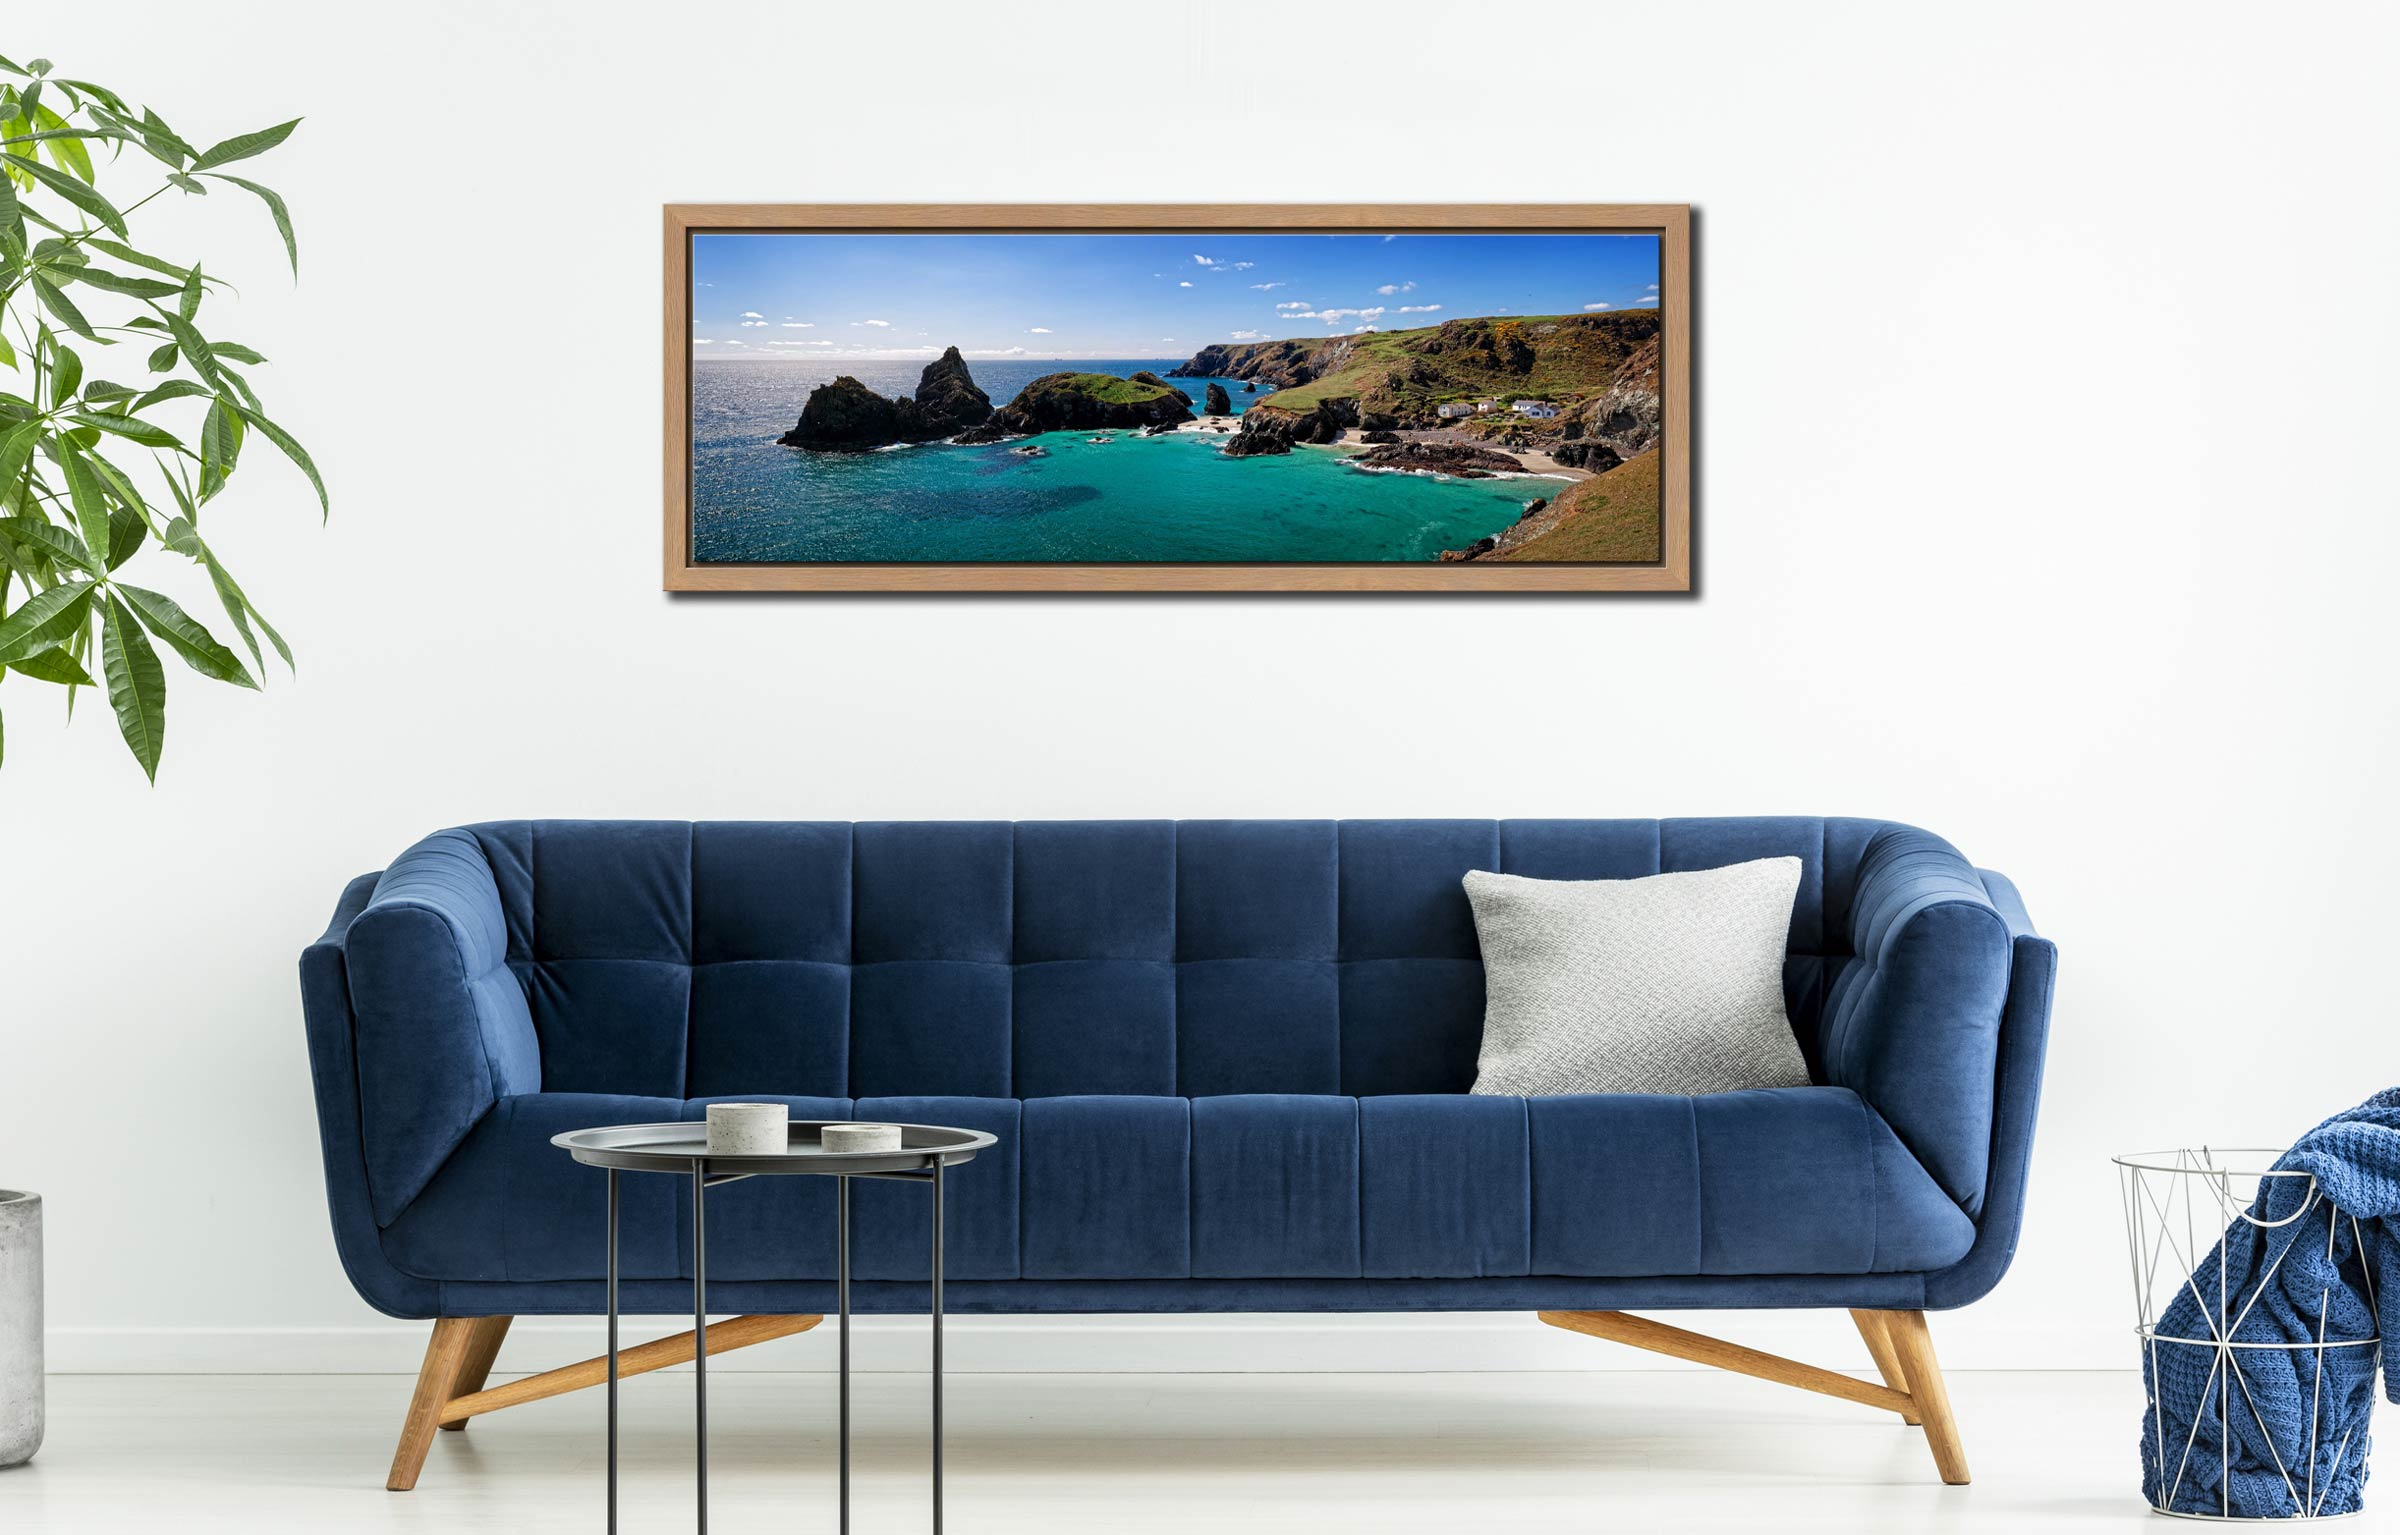 The rock stacks and small islands off Kynance Cove on the Lizard in Cornwall - Oak floater frame with acrylic glazing on Wall